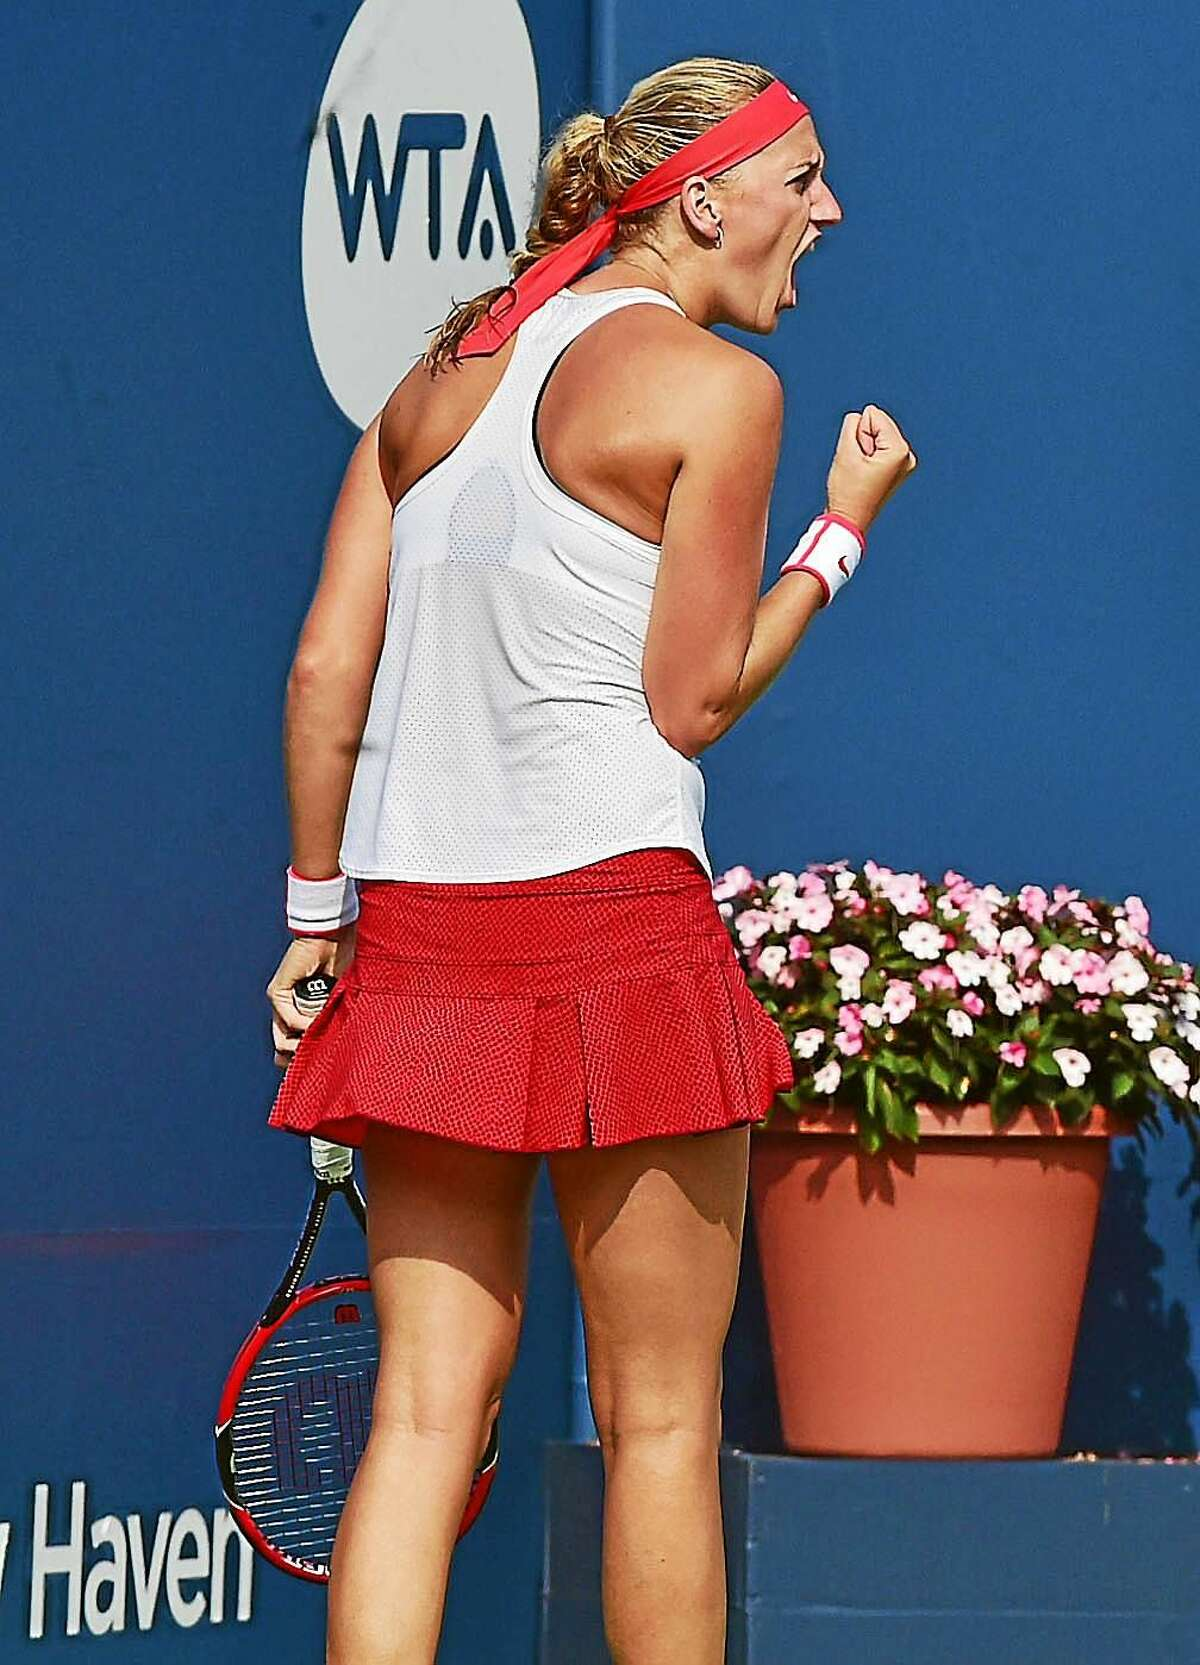 Petra Kvitova won the Connecticut Open by defeating Lucie Safarova on Saturday at the Connecticut Tennis Center.